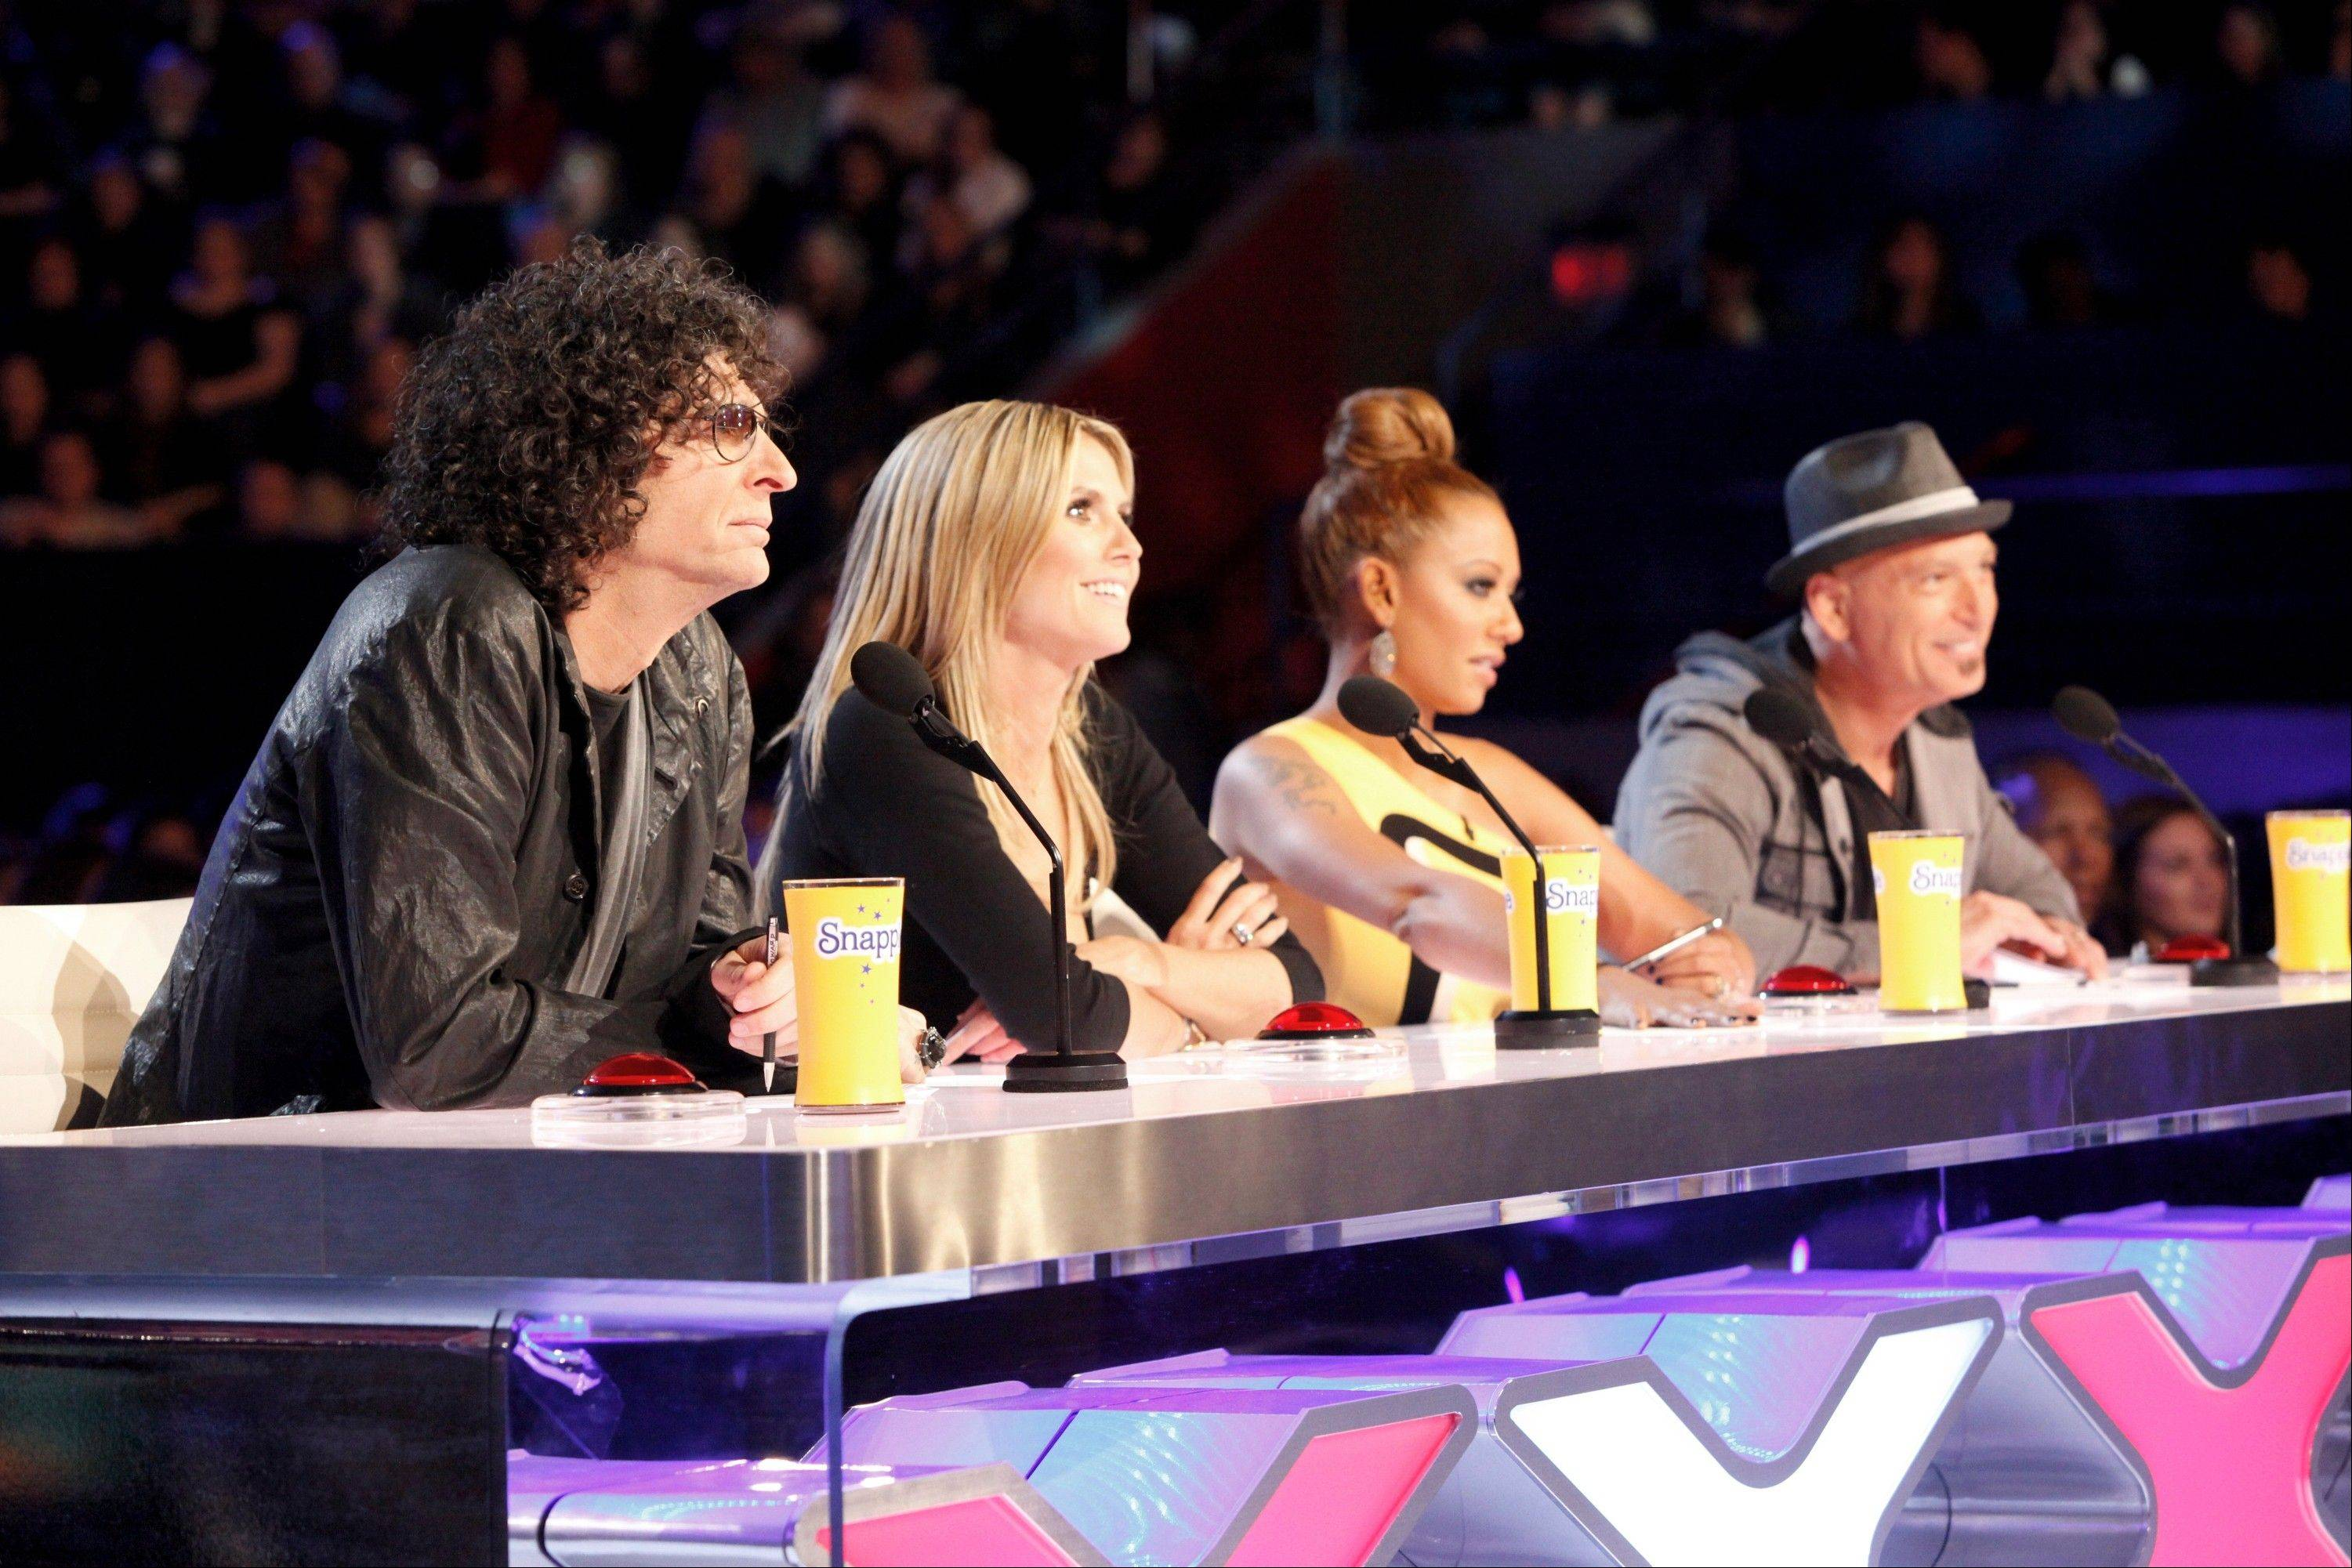 'America's Got Talent' judges admit they got tough at Rosemont auditions